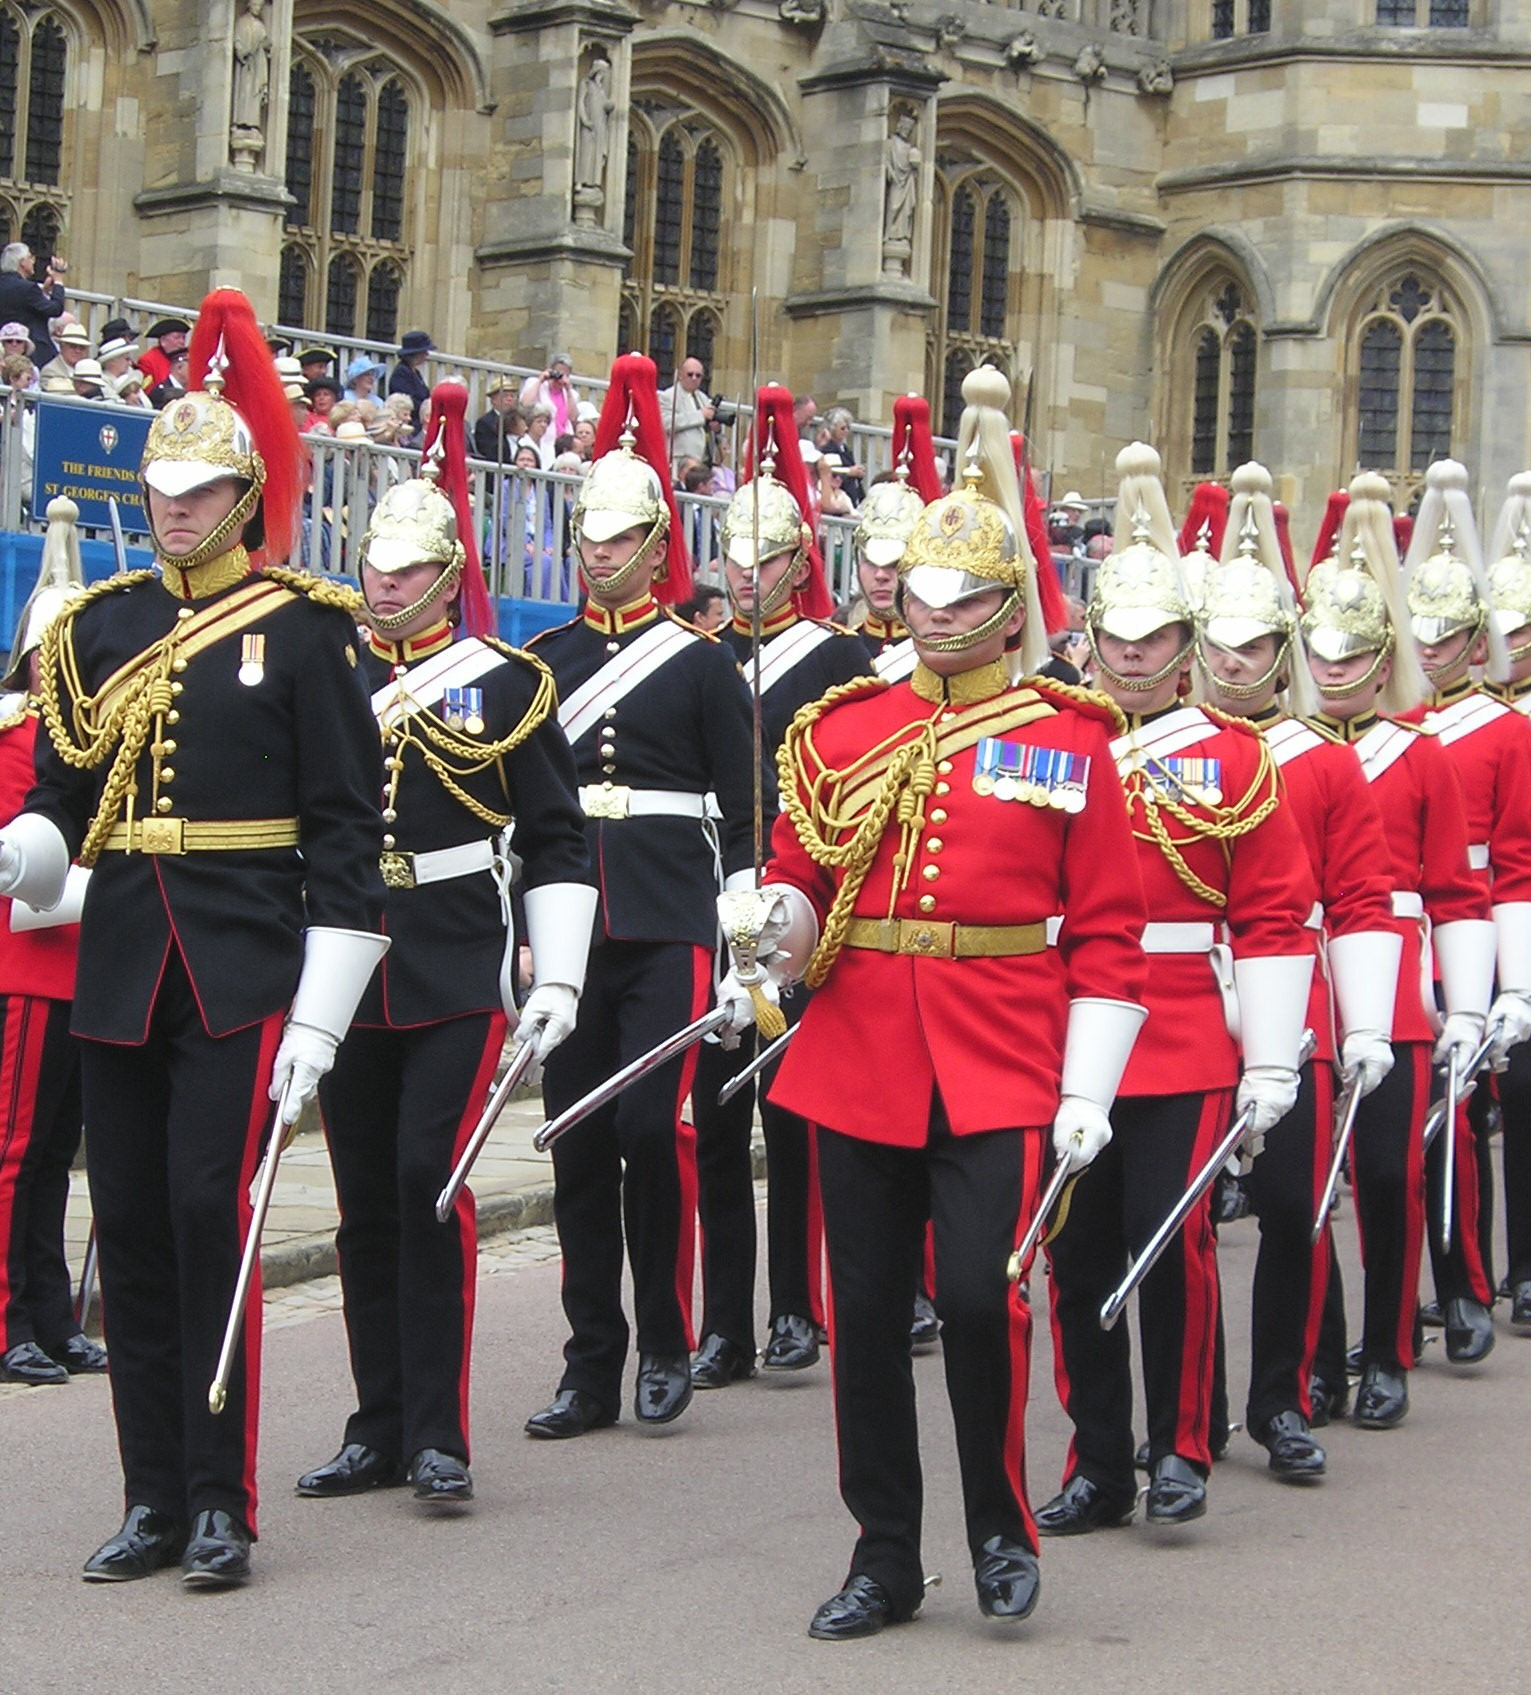 File:Household Cavalry.jpg - Wikipedia, the free encyclopedia